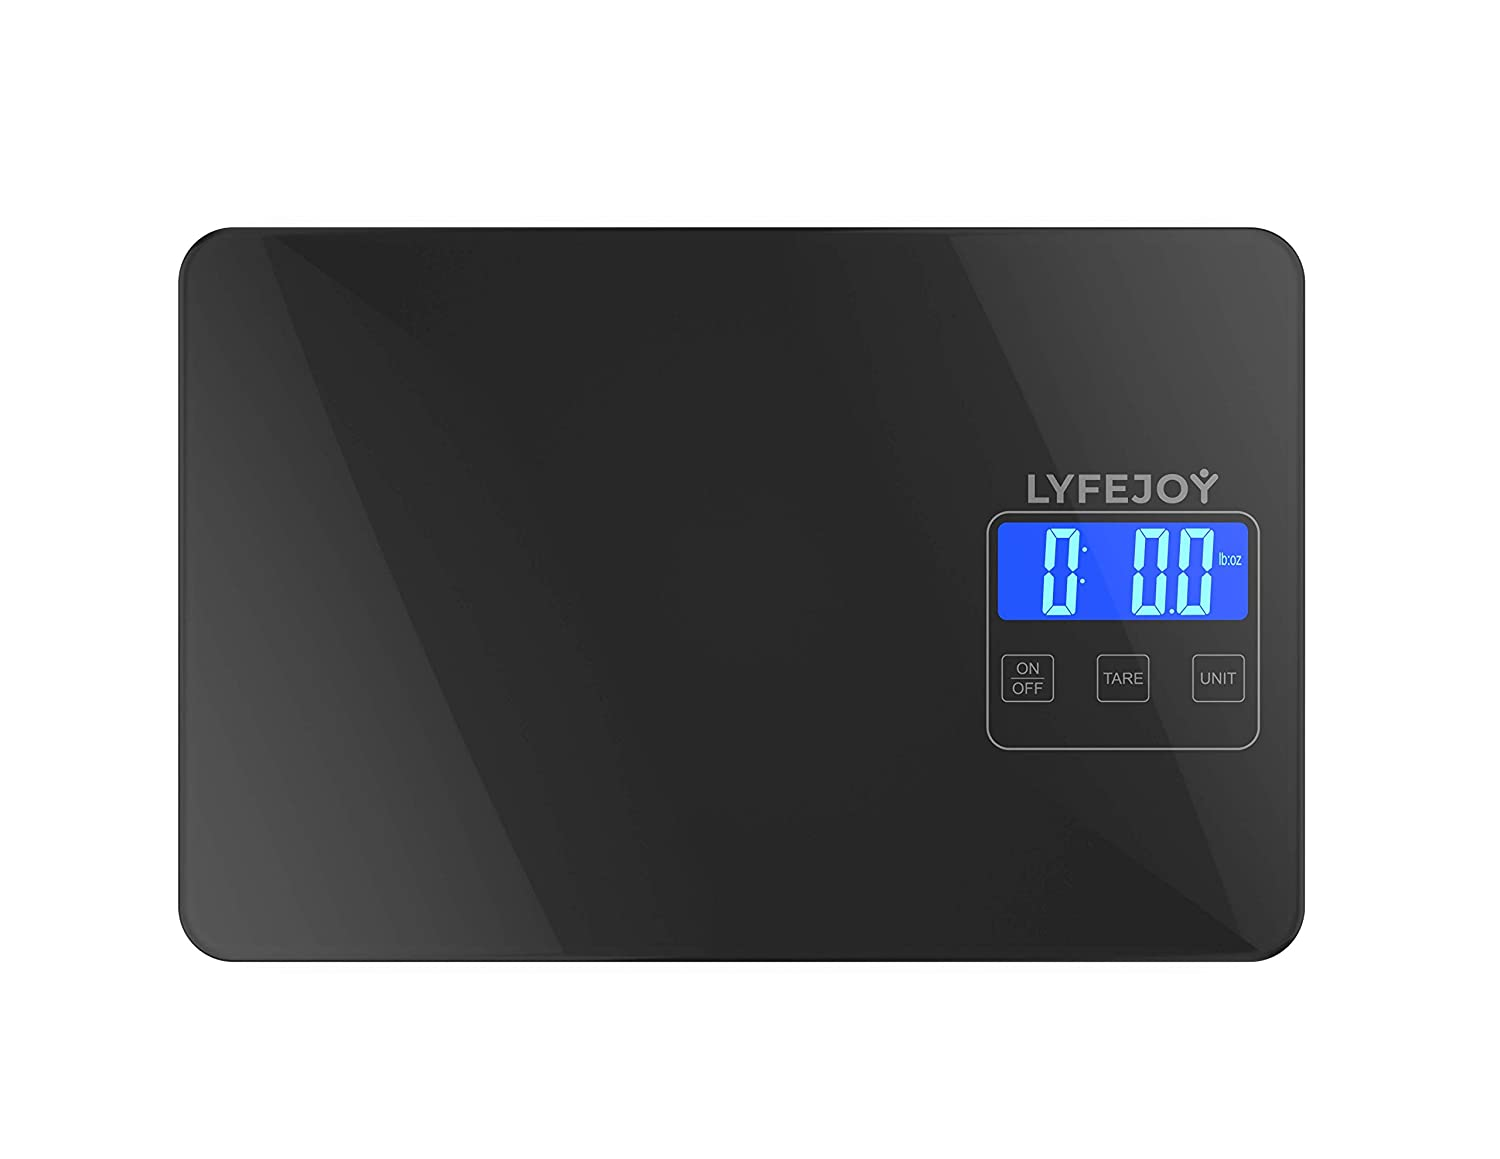 Lyfejoy Digital Kitchen Scale Weight Grams and Ounces for Cooking, Diet, Food Preparation, High Precision Milligram Sensitive Portable Stainless Steel Backlit Display, Black Tempered Glass, 15kg/33lbs